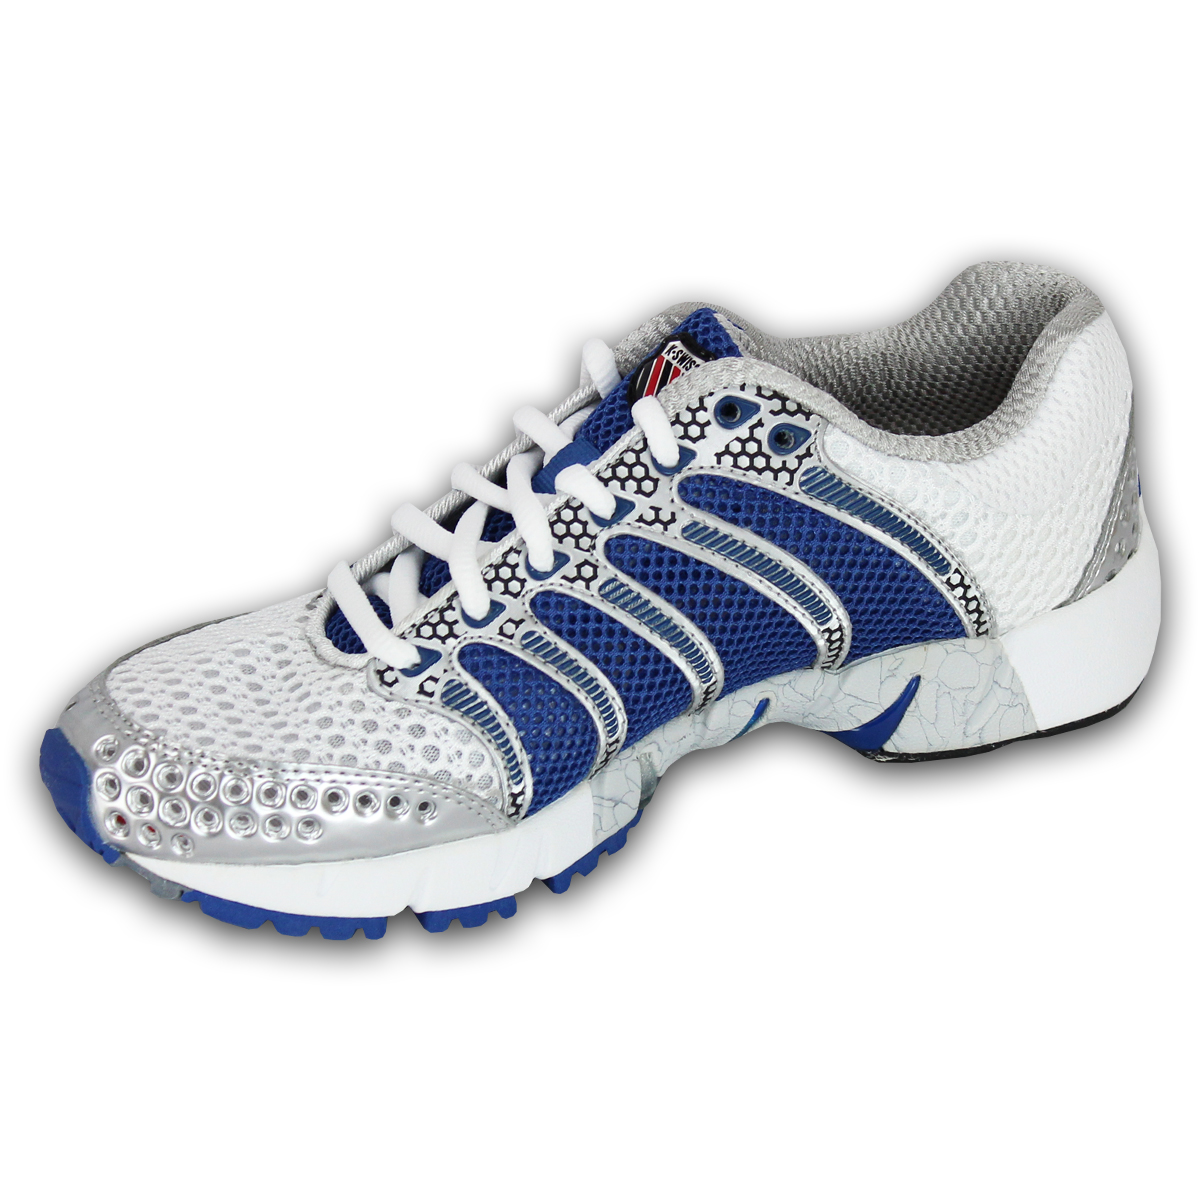 Ladies Trainers Womens K Swiss Shoes Running 92243163 Designer Lace Up Jogging